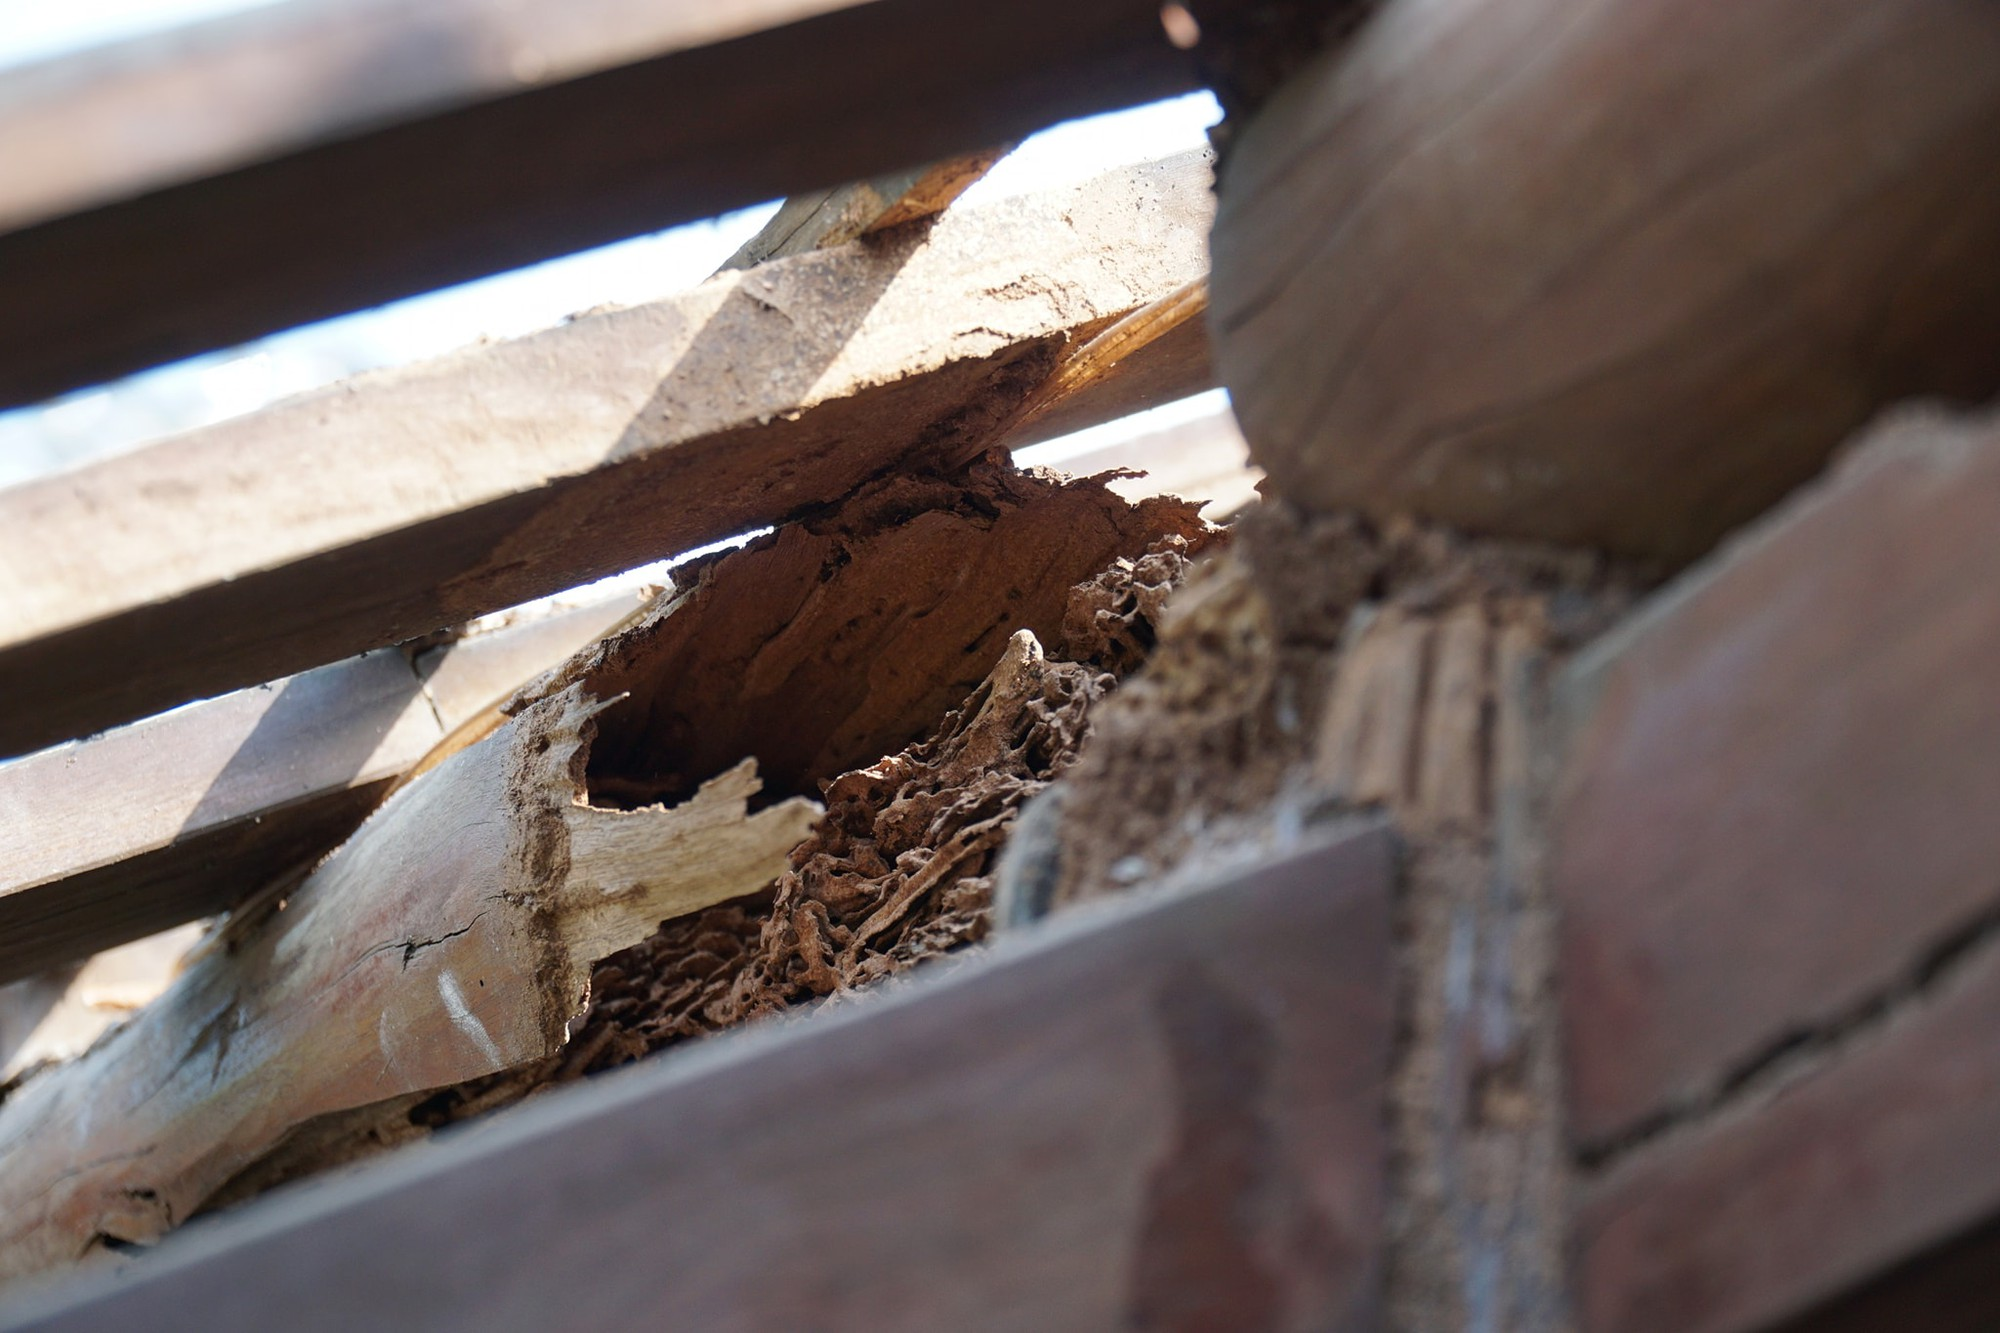 Wooden columns of the main structure of the Tu Hieu Pagoda in Hue, Vietnam are badly damaged by termites in this photo uploaded to the pagoda's official Facebook page.